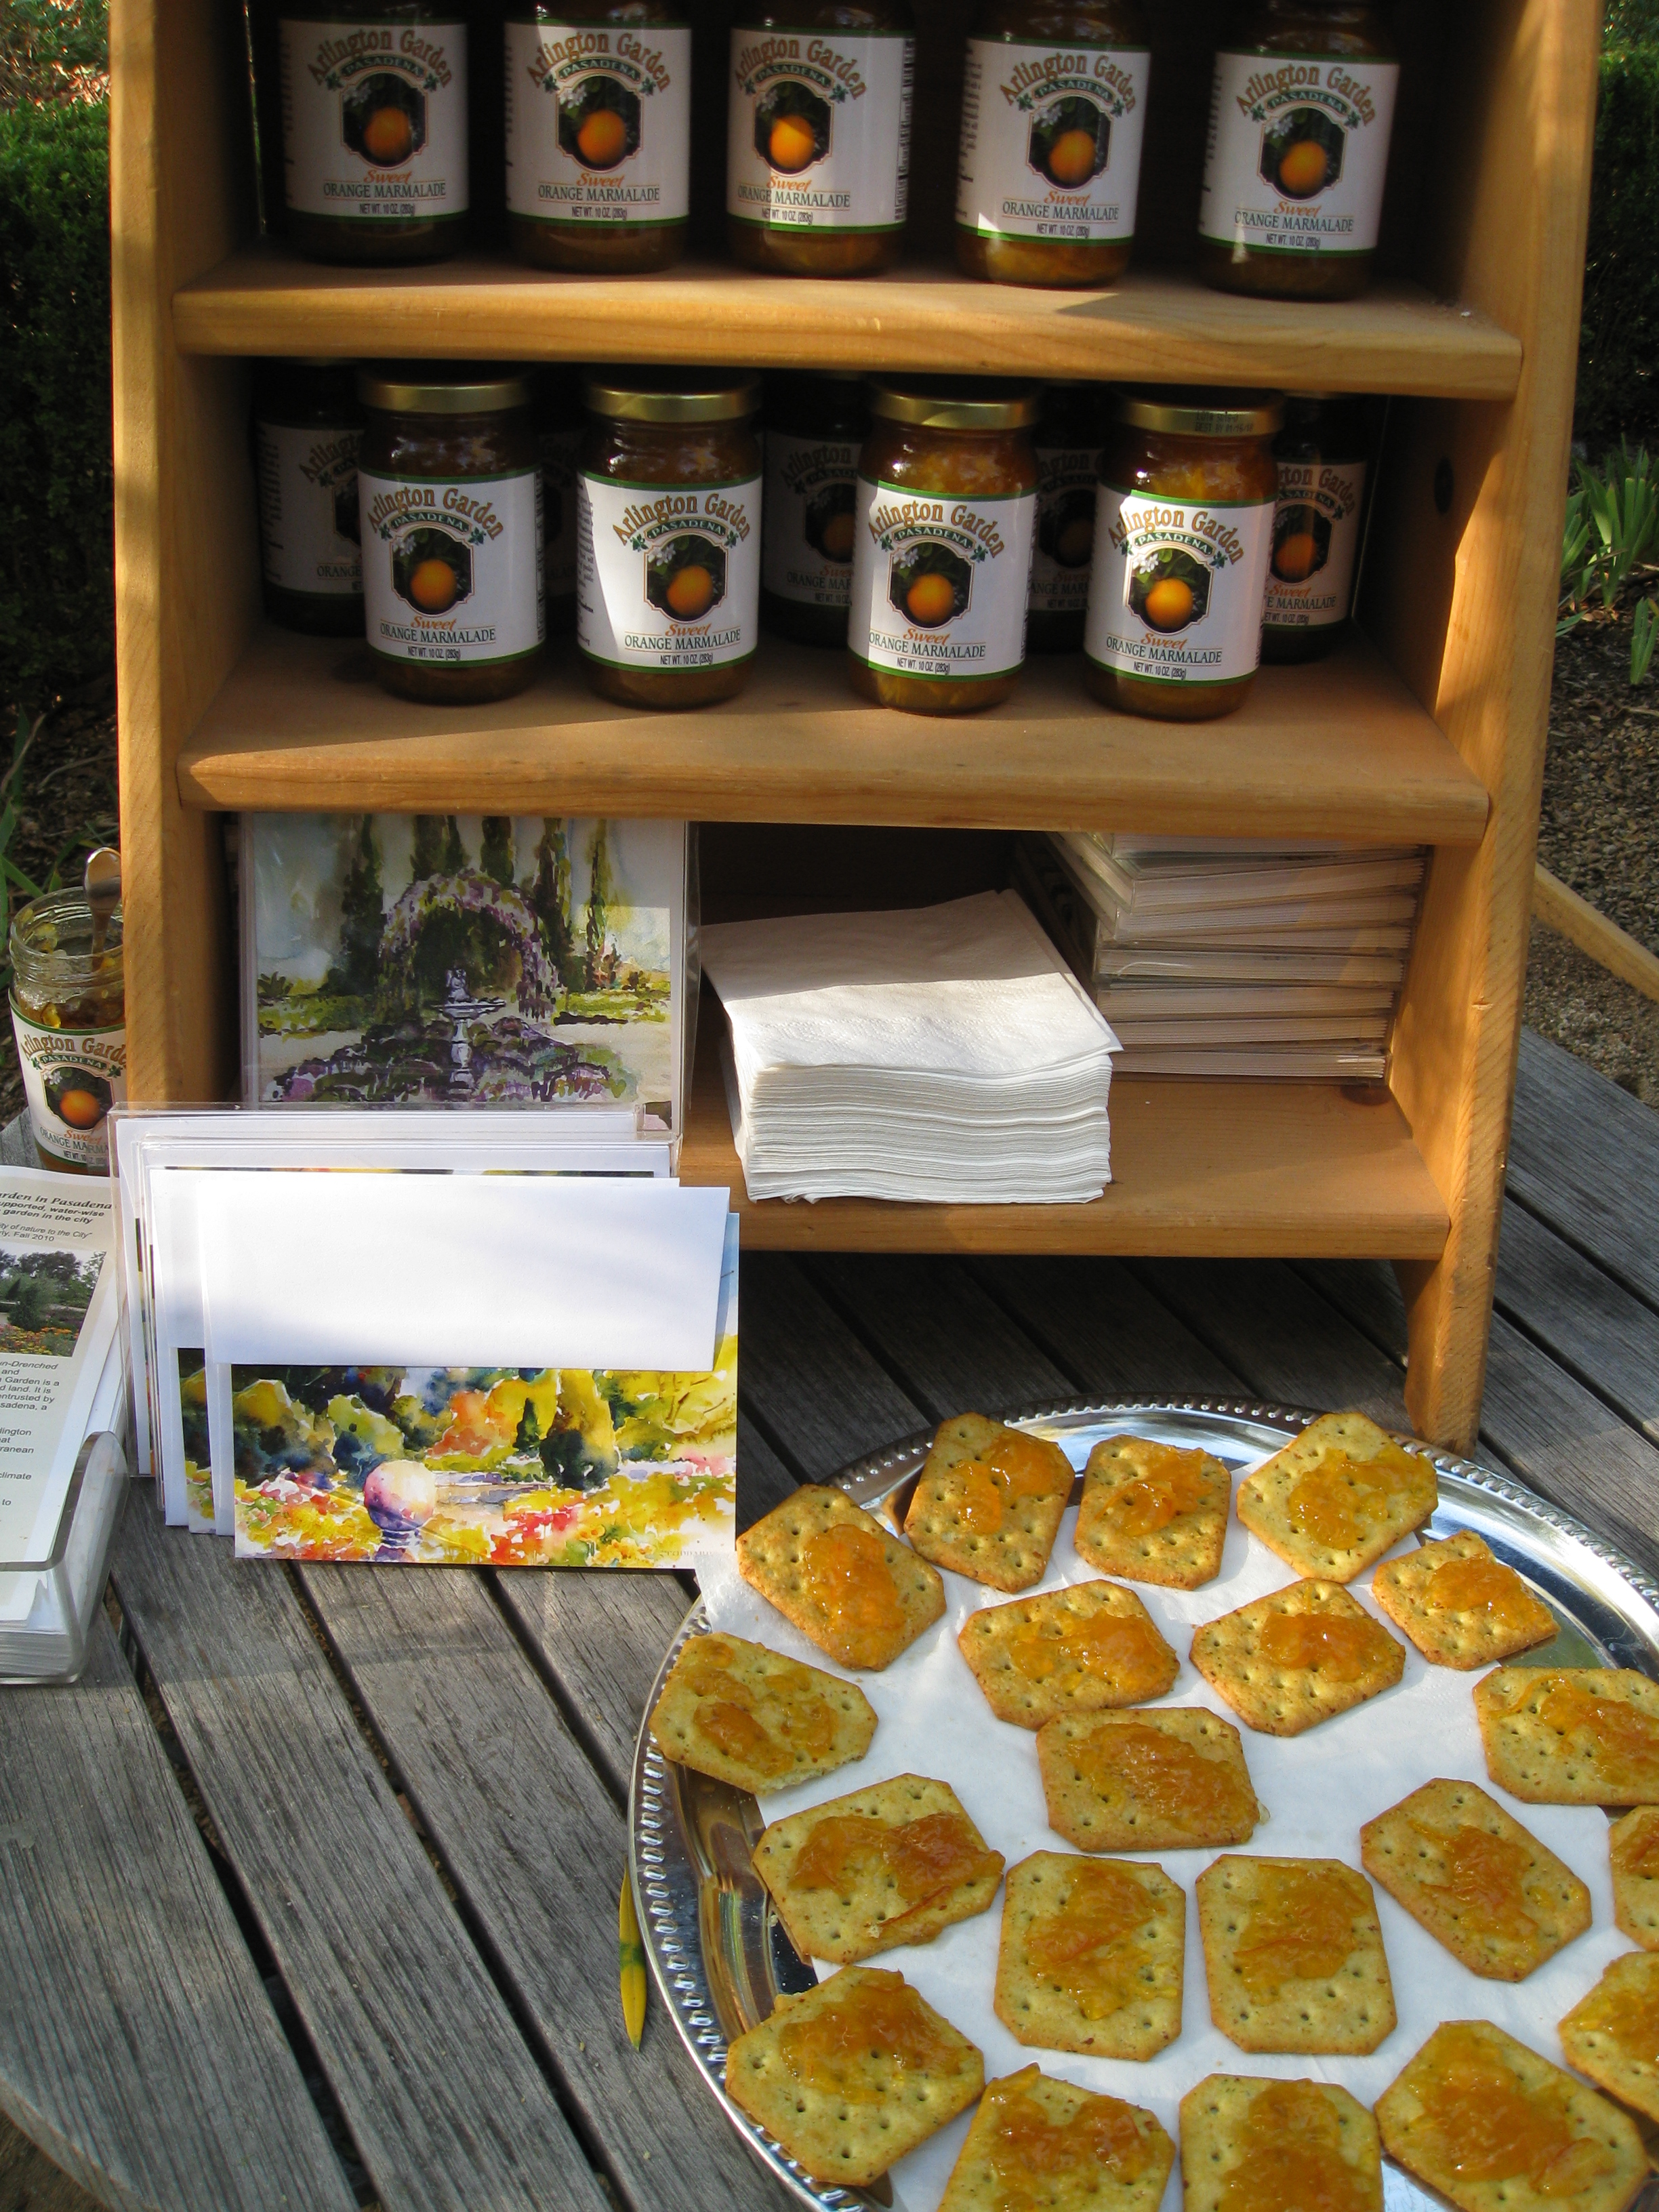 Famous for its marmalade, Arlington Gardens showcases treats from its orchards.